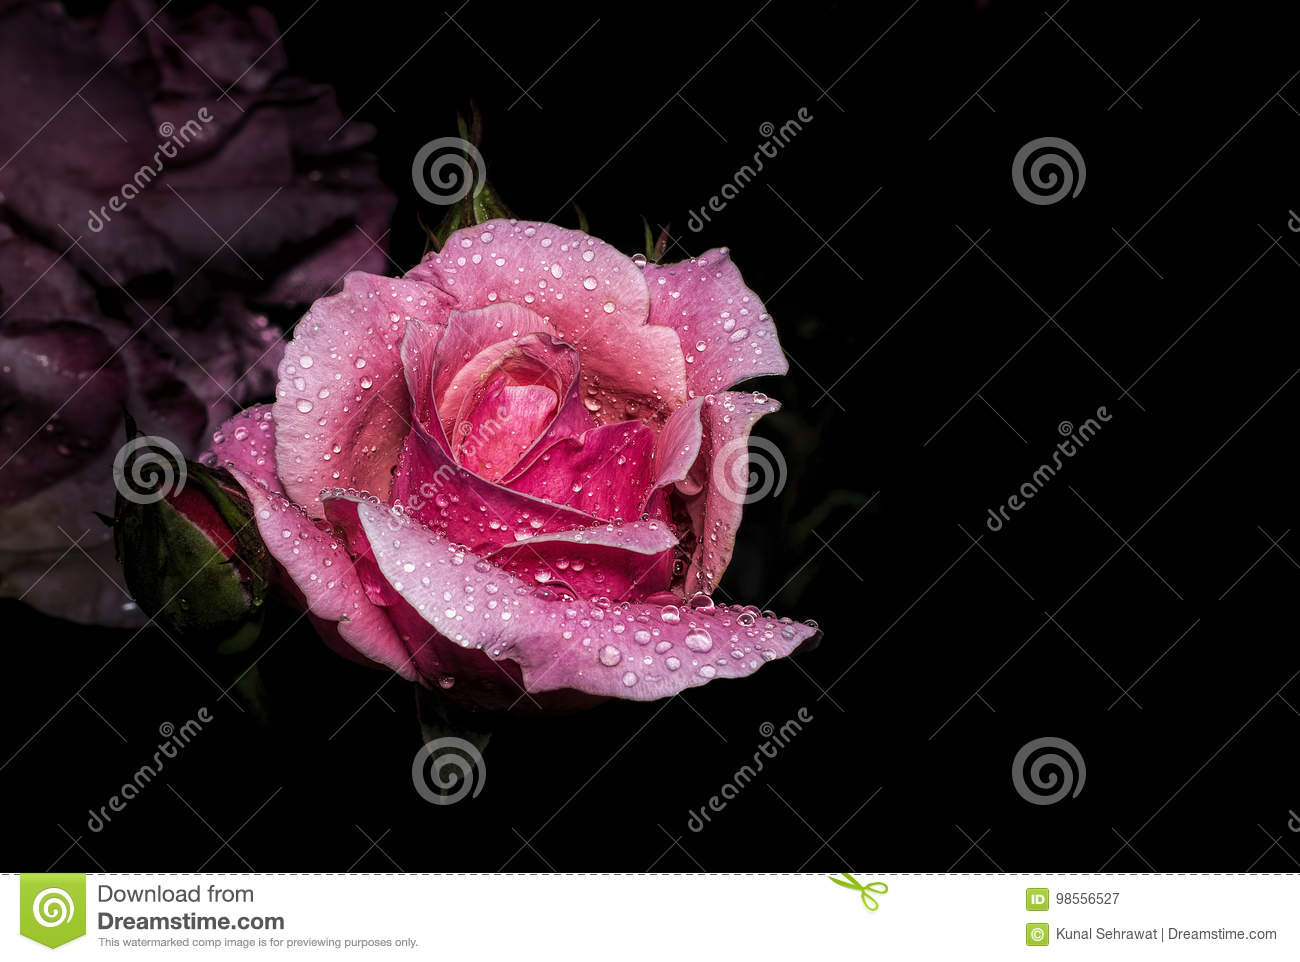 Beautiful pink rose with water drop isolated on black background beautiful pink rose with water drop isolated on black background izmirmasajfo